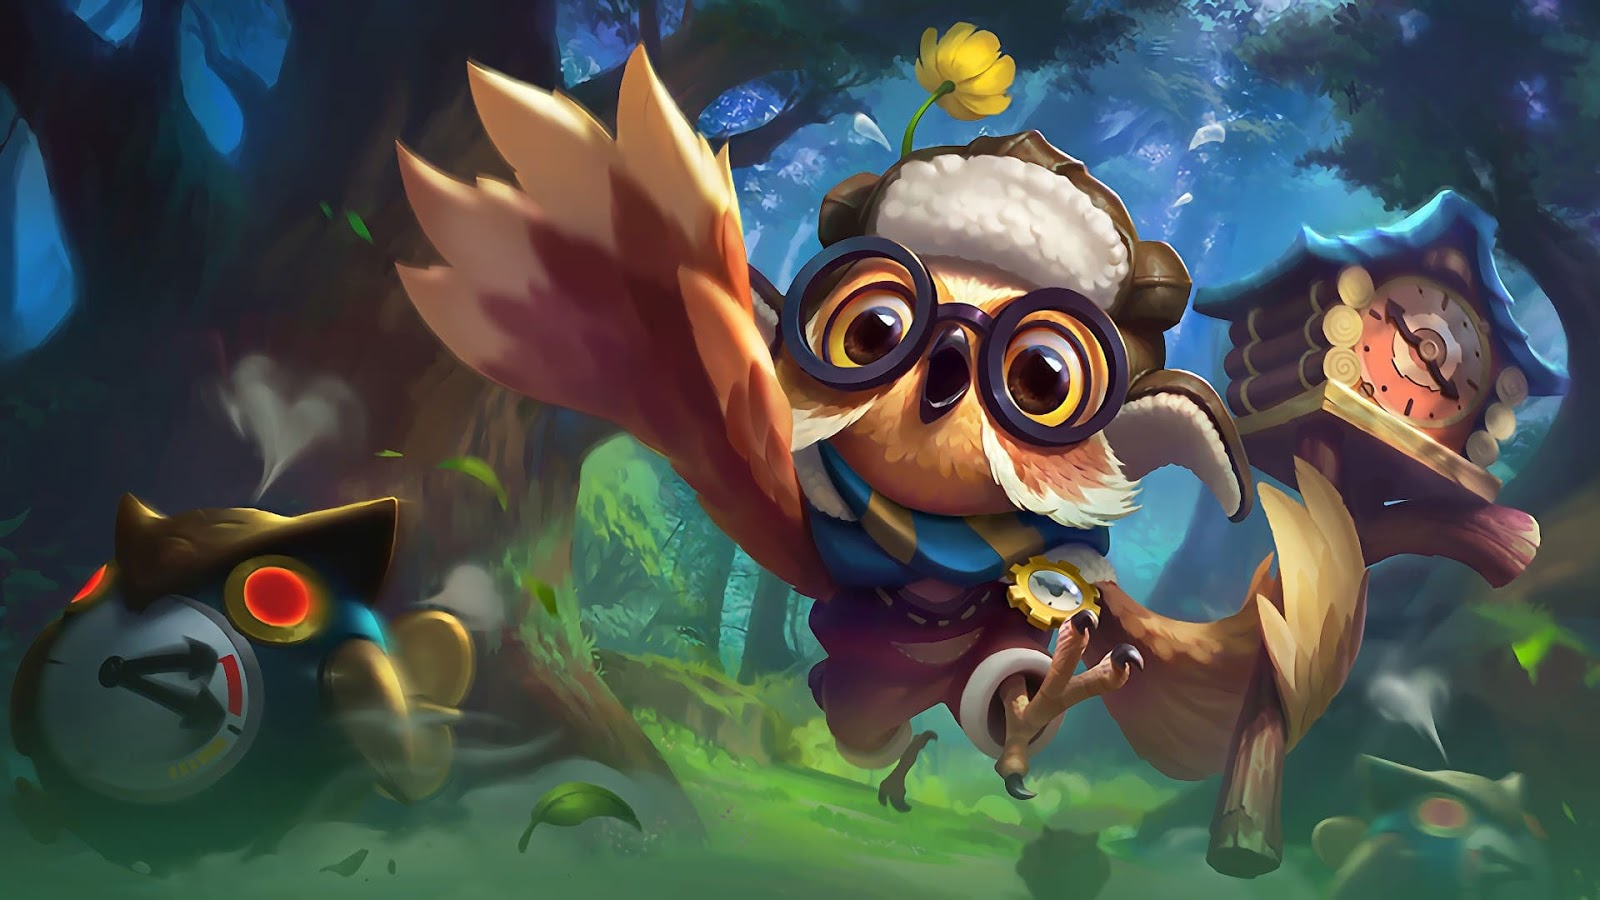 Wallpaper Diggie Timekeeper Skin Mobile Legends HD for PC